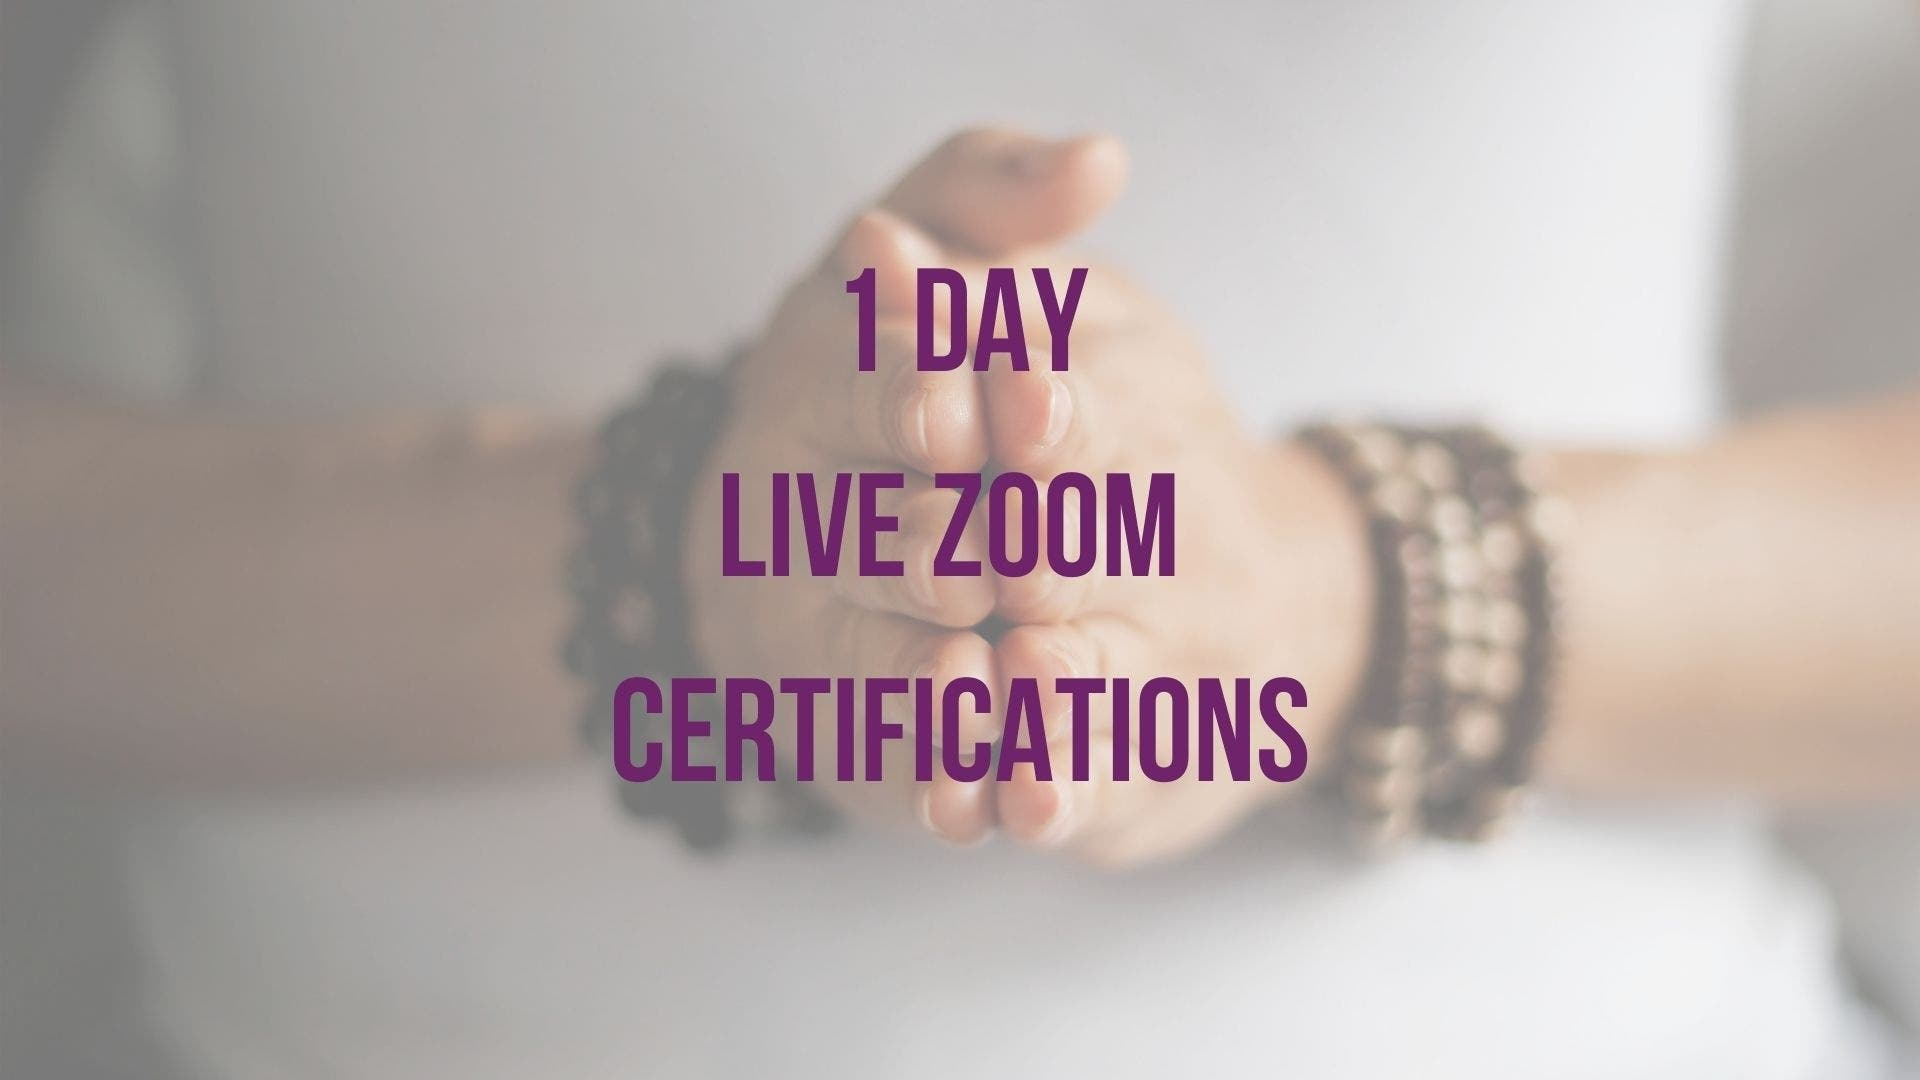 1 Day Live Zoom Certifications